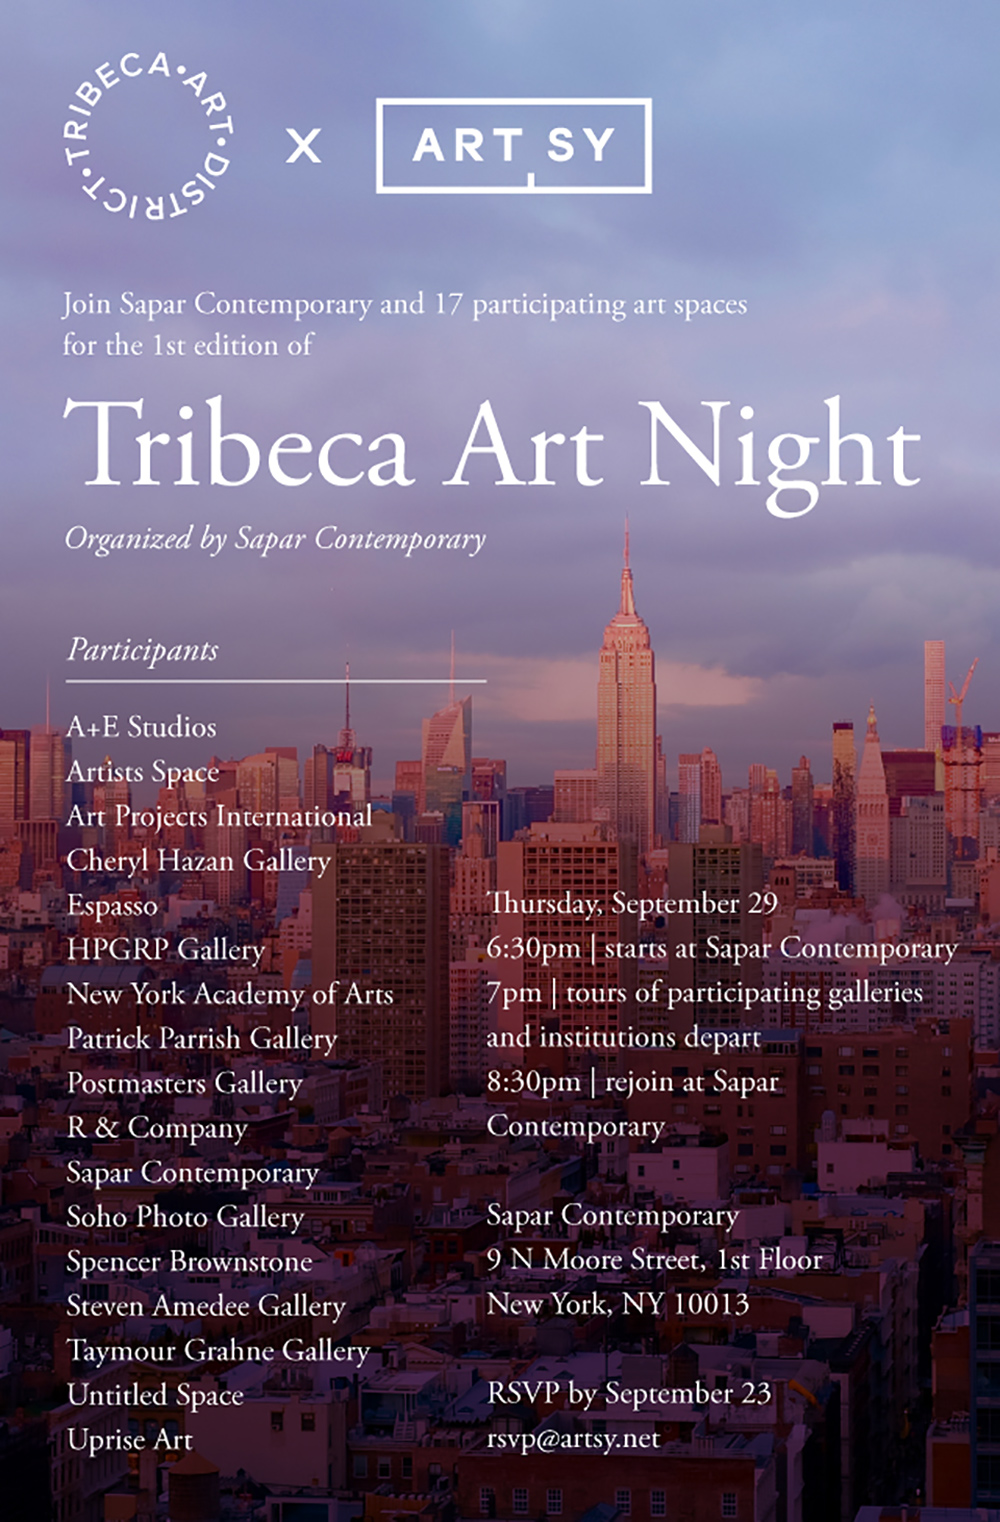 tribecaartnight_invitation_-september29-1000